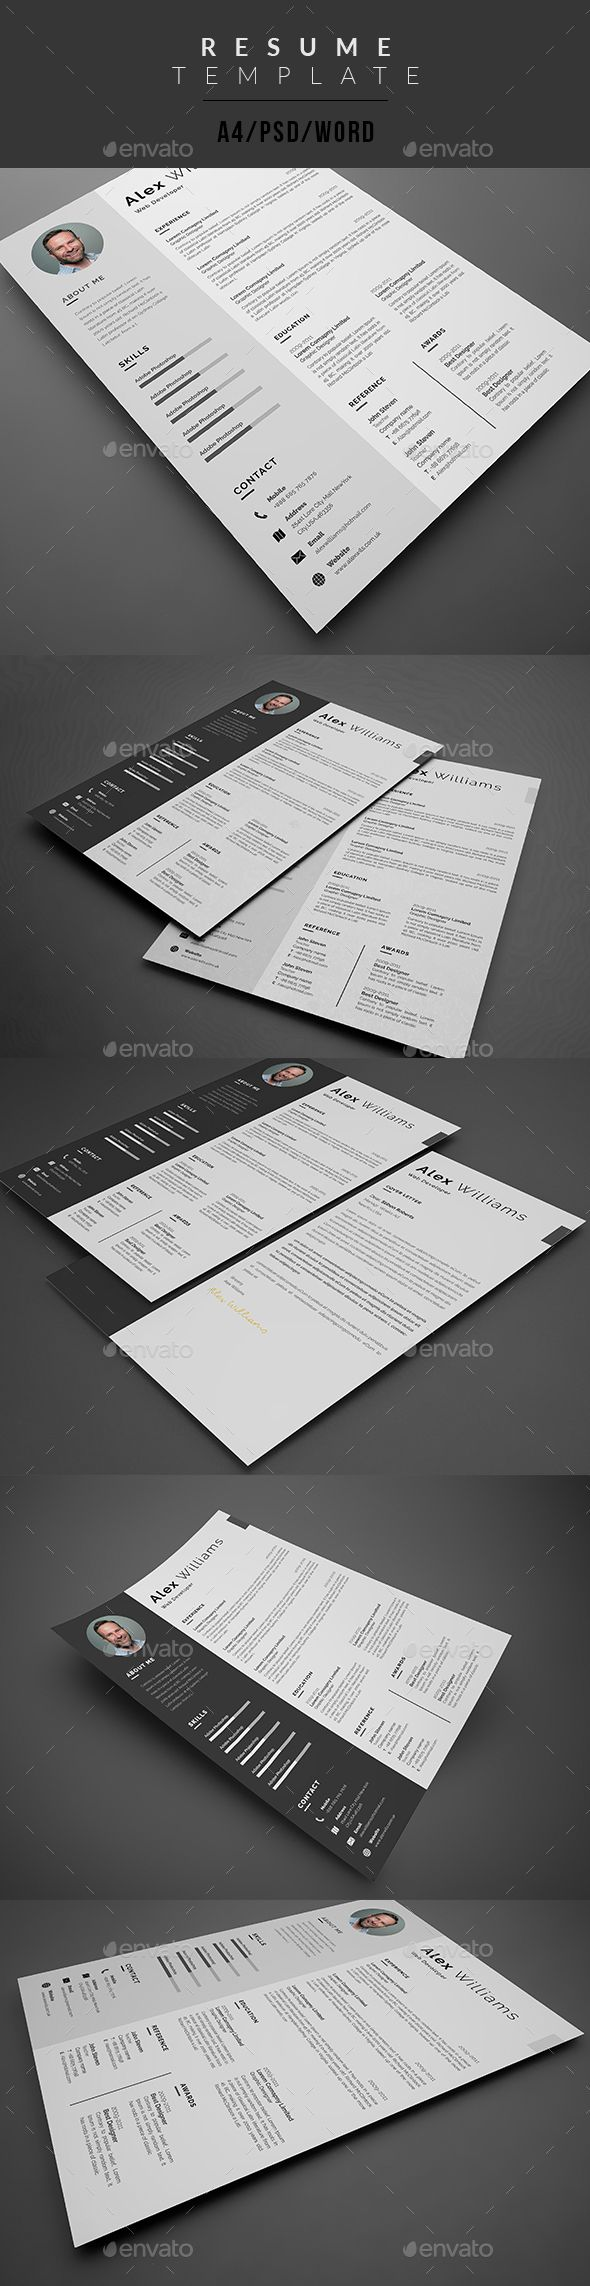 photographer cover letter%0A Resume by Paulresume